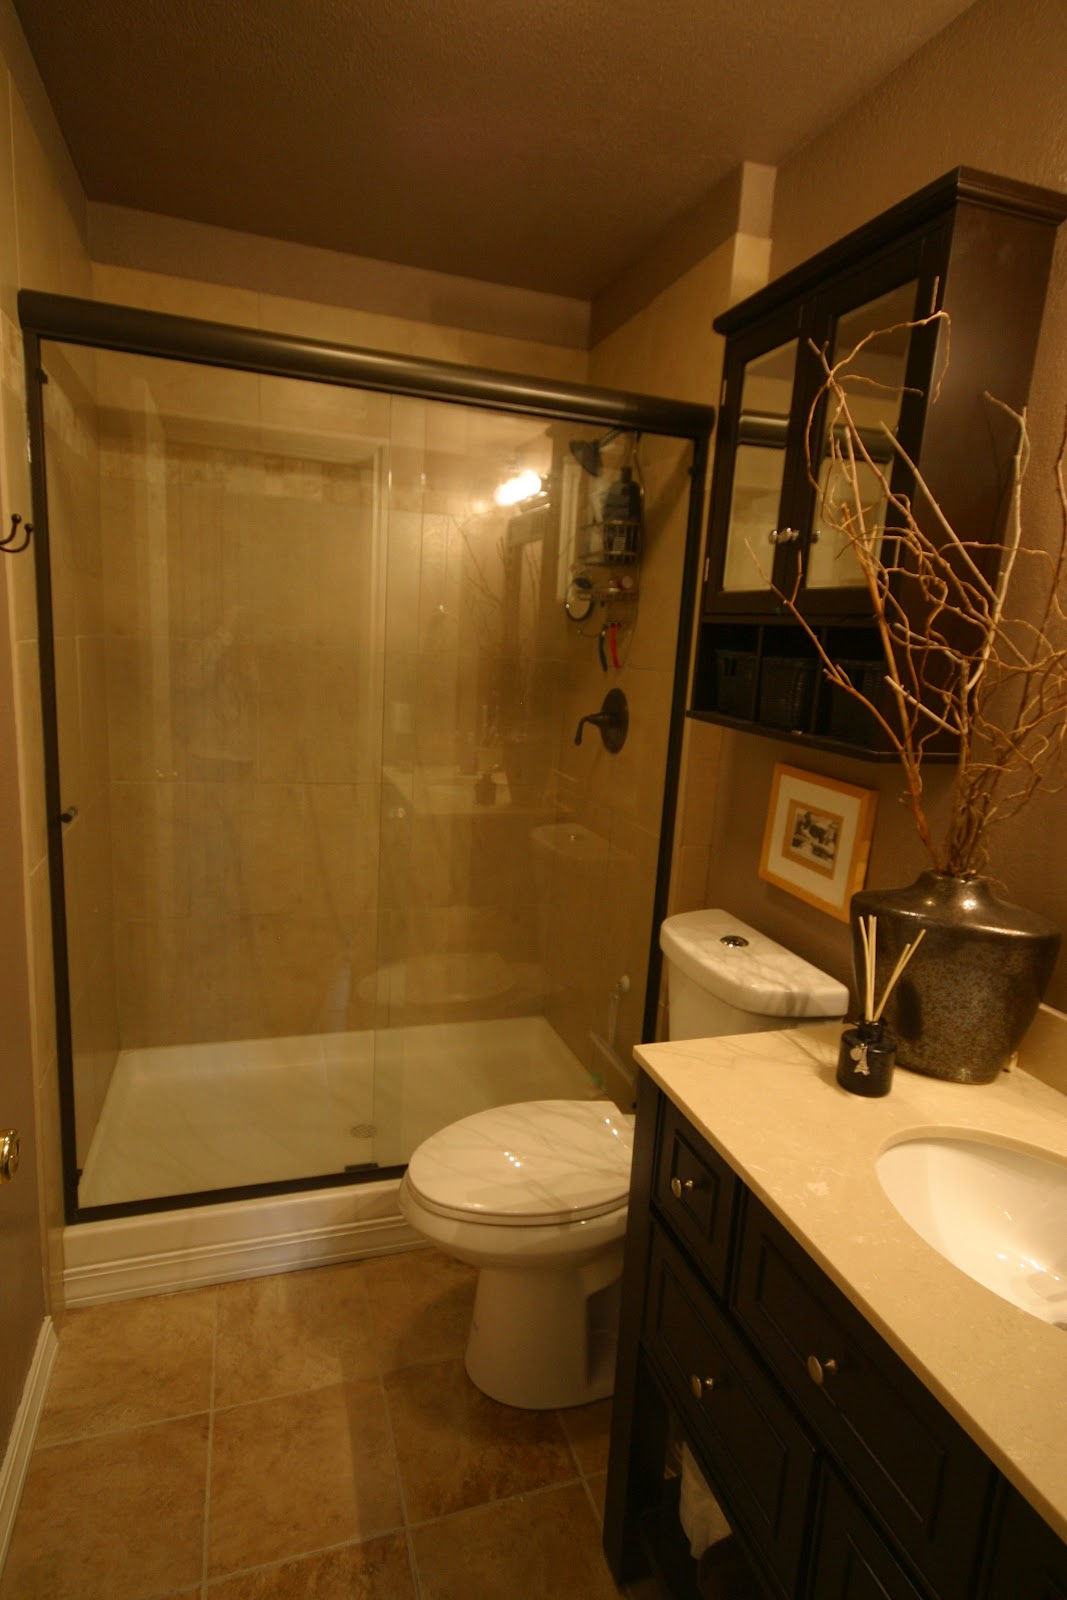 Small Bathroom Remodels: Maximal Outlook in Minimal Space ... on Small Bathroom Ideas With Shower Only id=28546